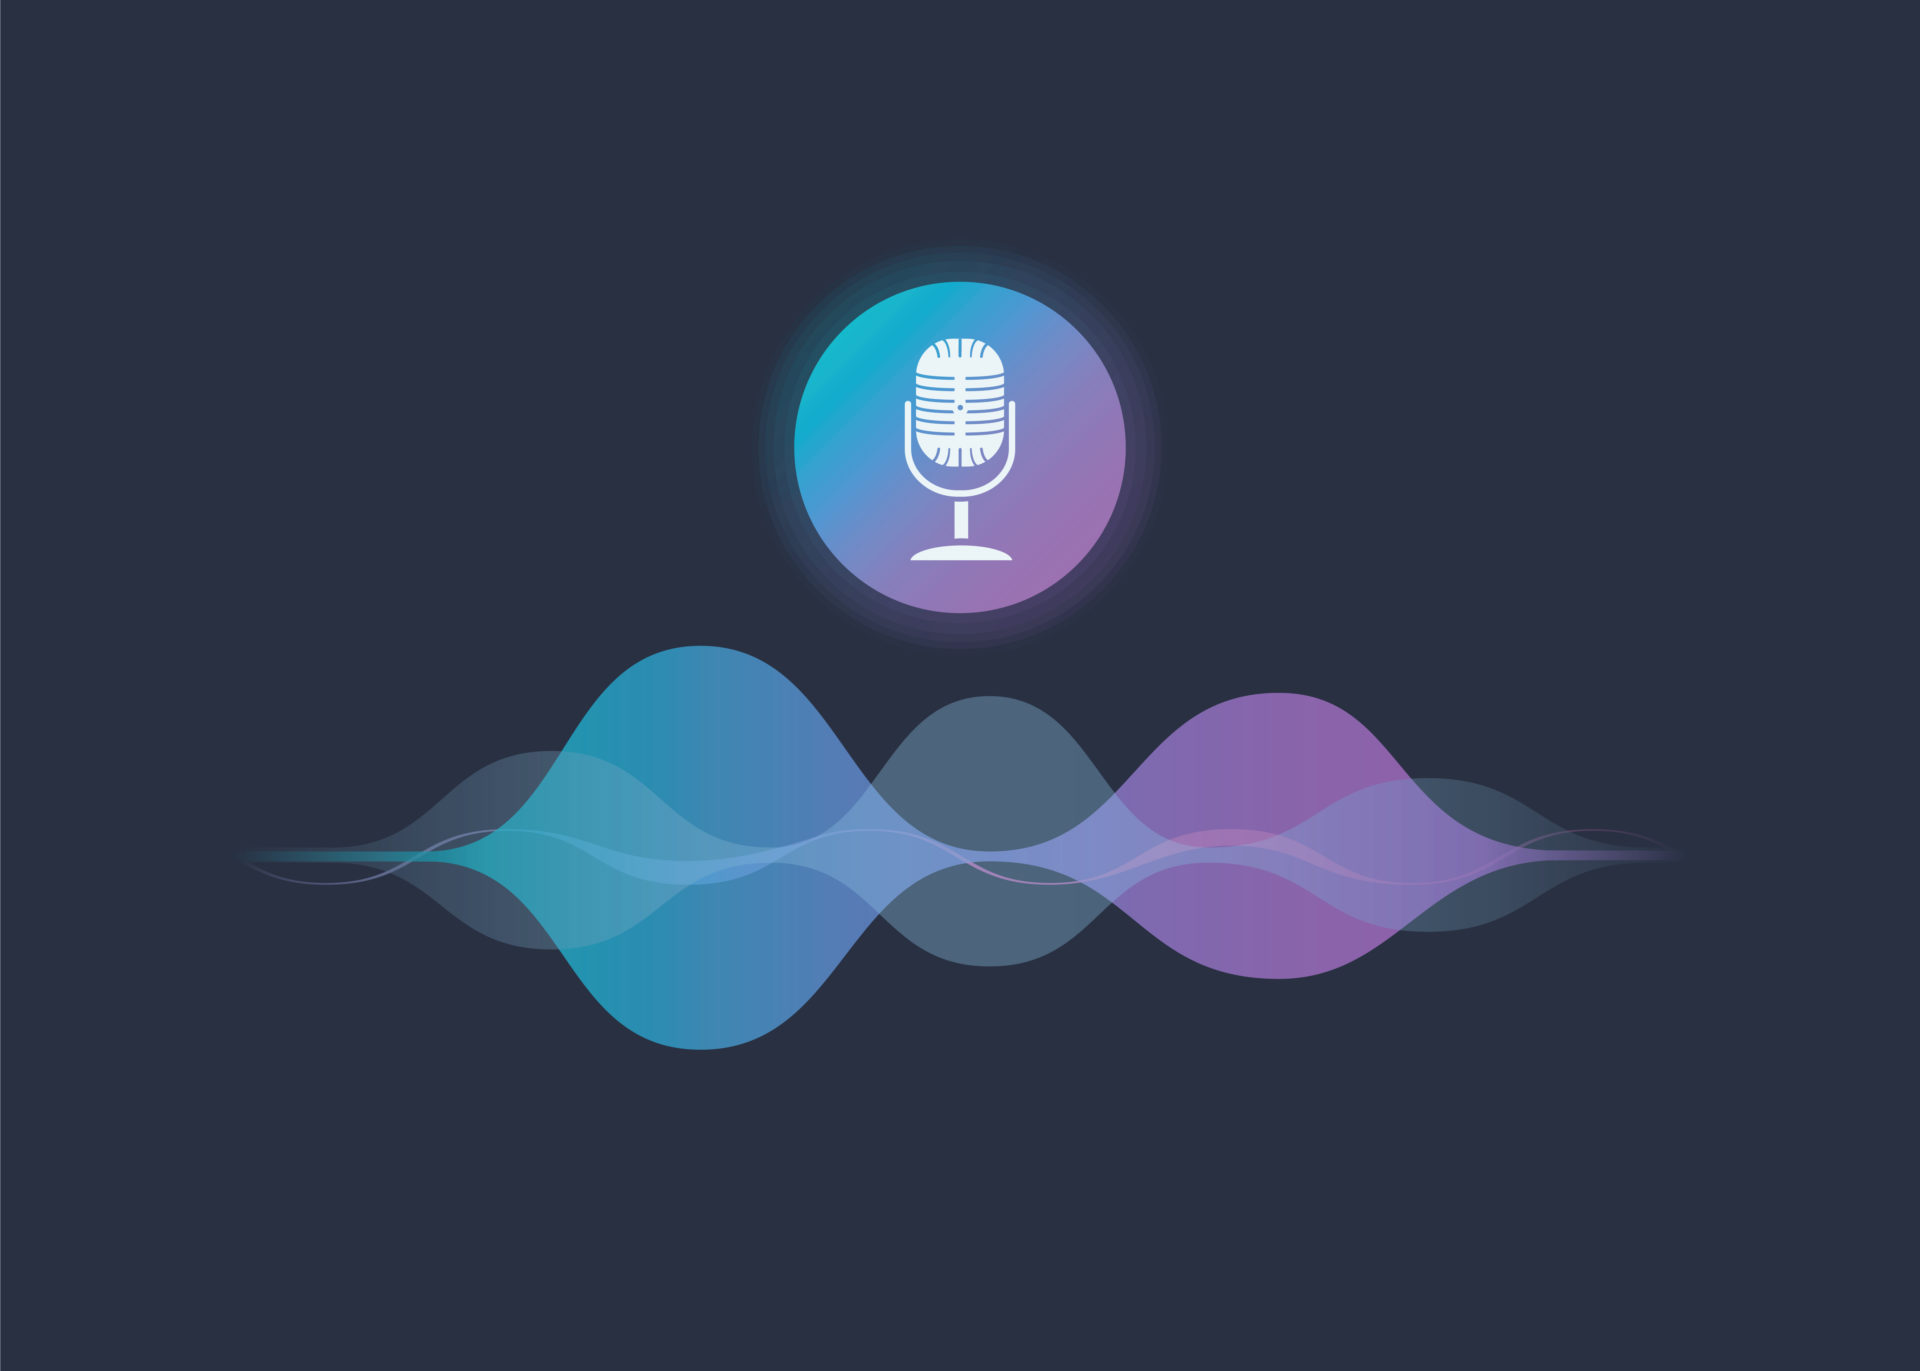 Consumers choose voice assistants over humans, report finds